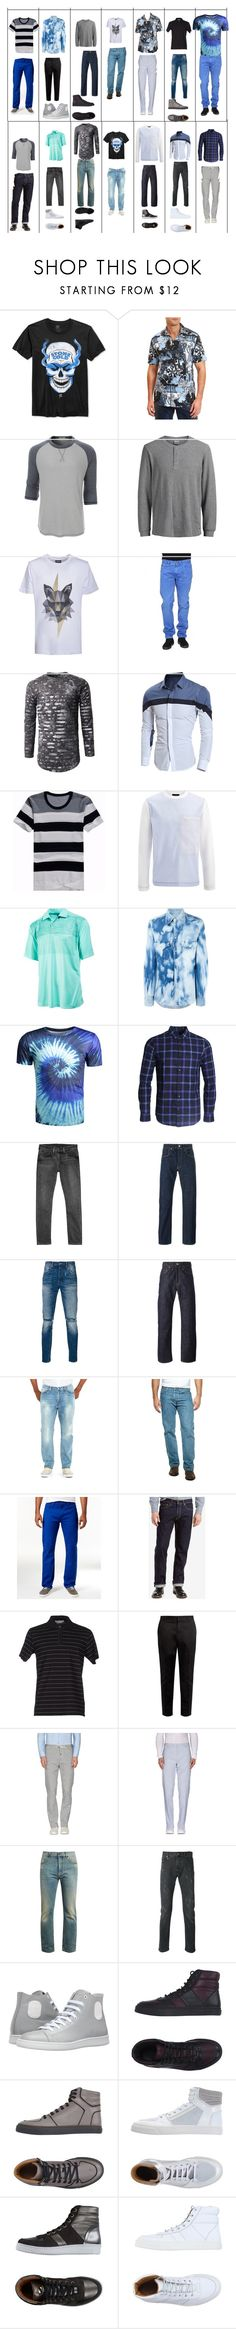 """""""Son Of Khione"""" by shadowsweety on Polyvore featuring Robert Graham, LE3NO, Jack & Jones, Kloters Milano, Marc Jacobs, Joseph, Greg Norman, Dsquared2, Levi's y men's fashion"""